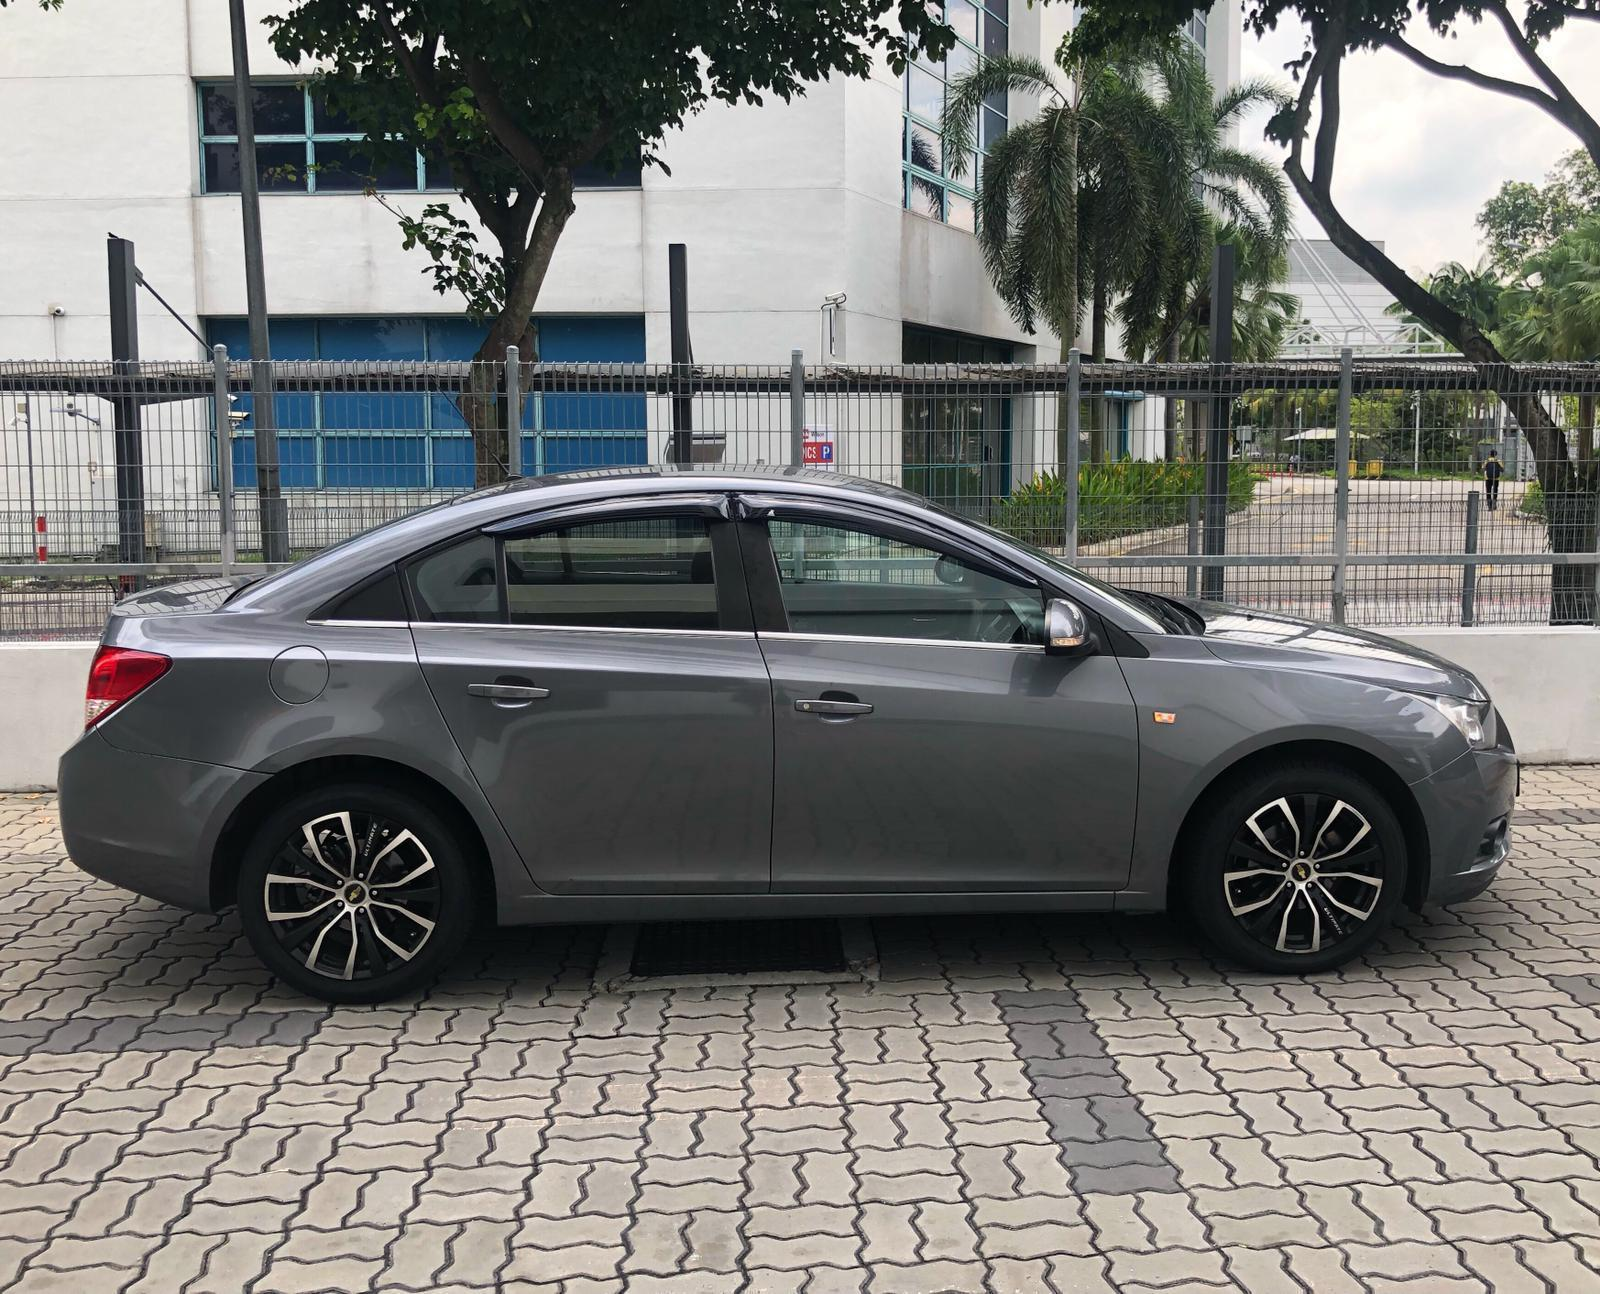 Chevrolet Cruze 1.6A CHEAPEST Rental for PHV GoJek Grab Ryde or Personal use